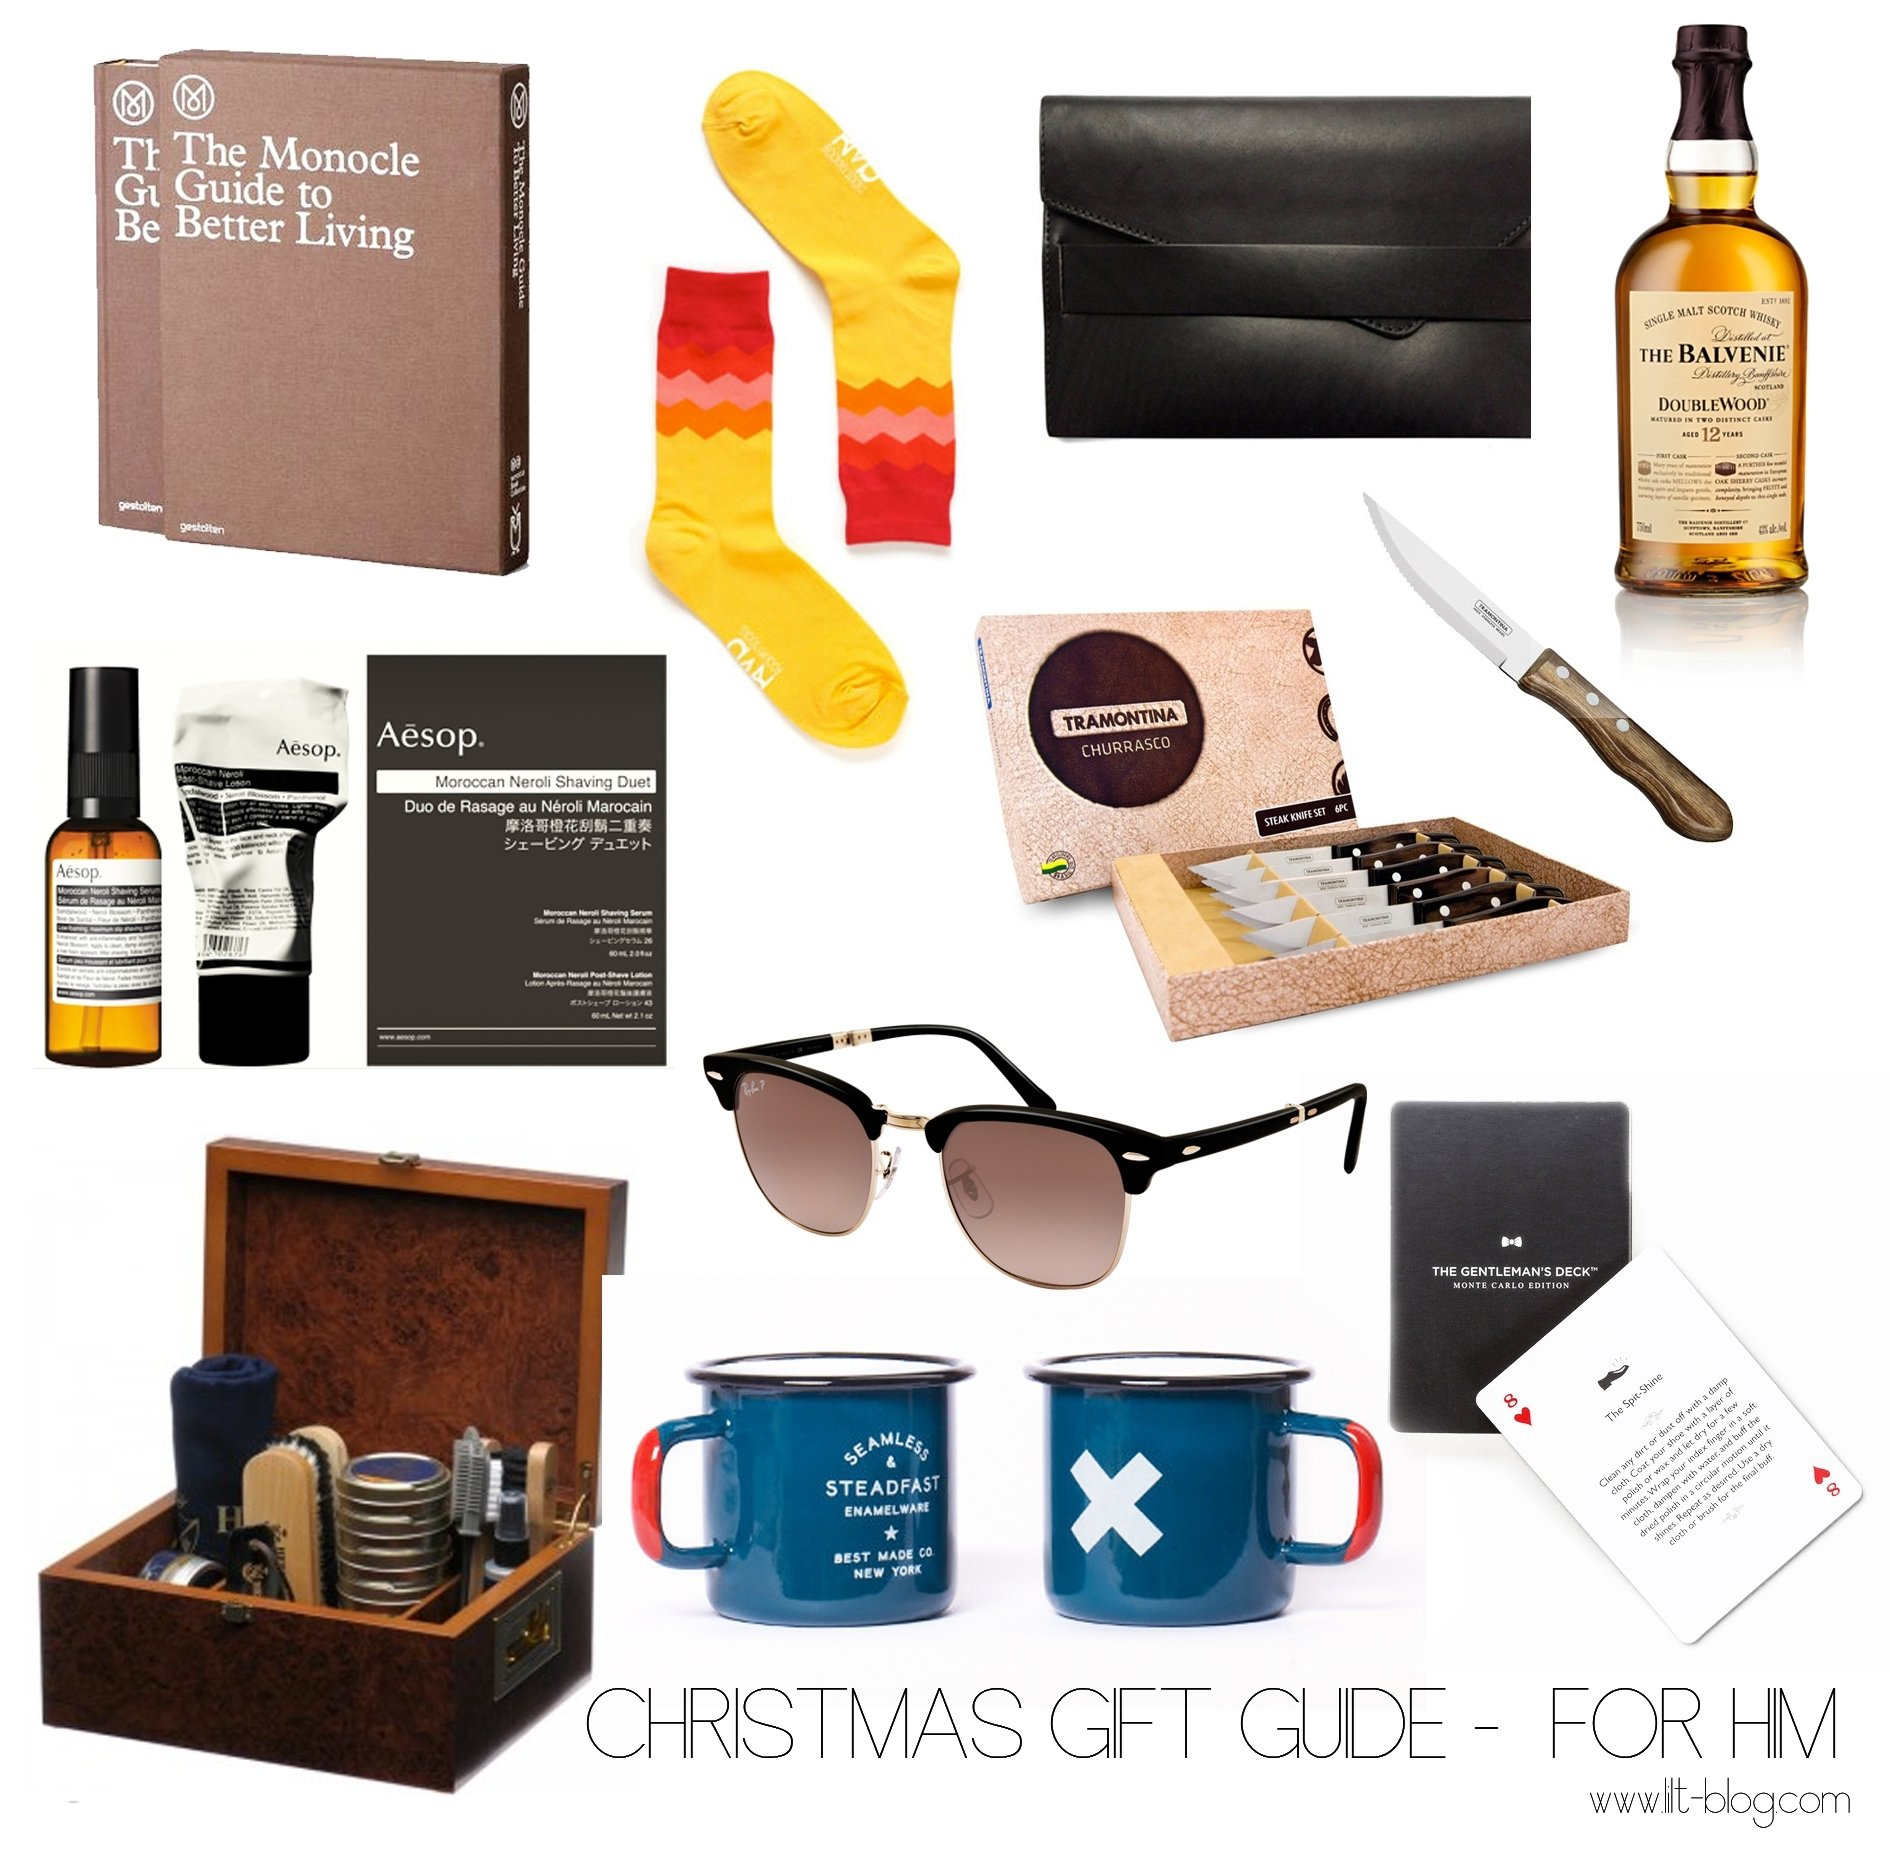 10 Spectacular Top Christmas Gift Ideas 2013 christmas gift guide for him 7 2020